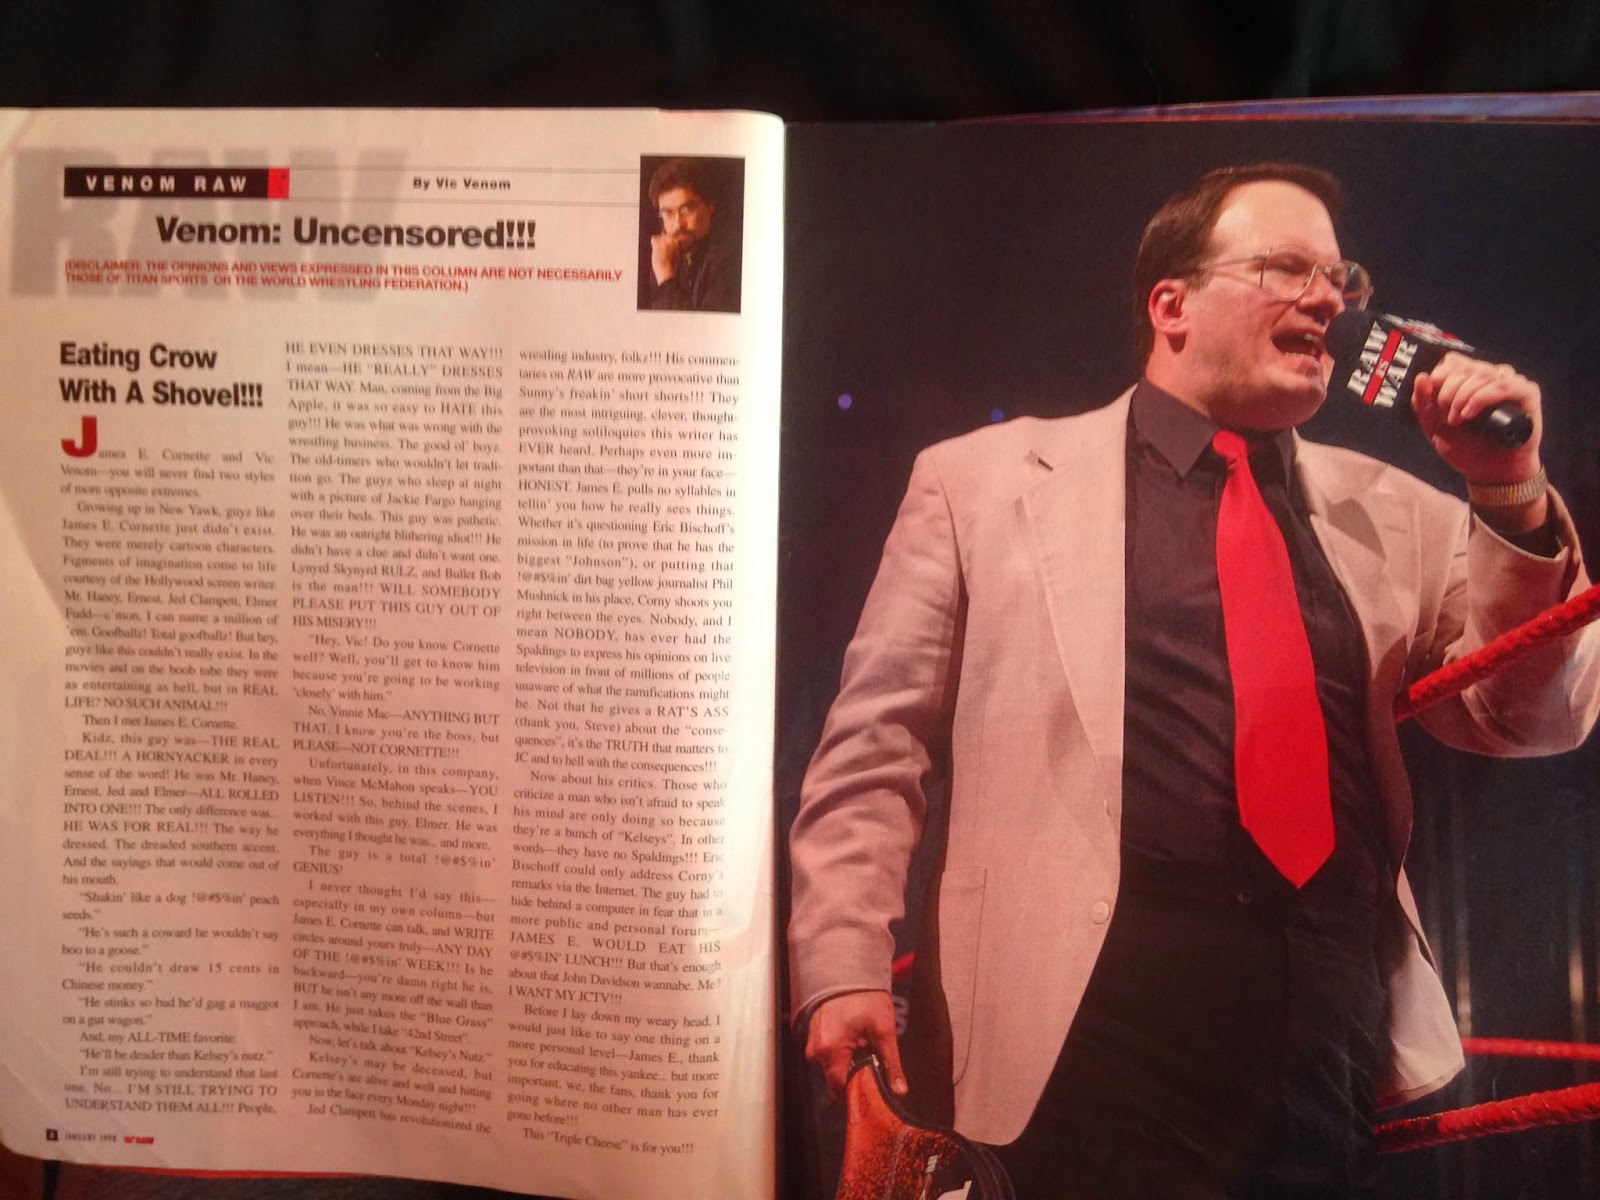 WWE - WWF Raw Magazine - January 1998 - Vince Russo shoots on Jim Cornette